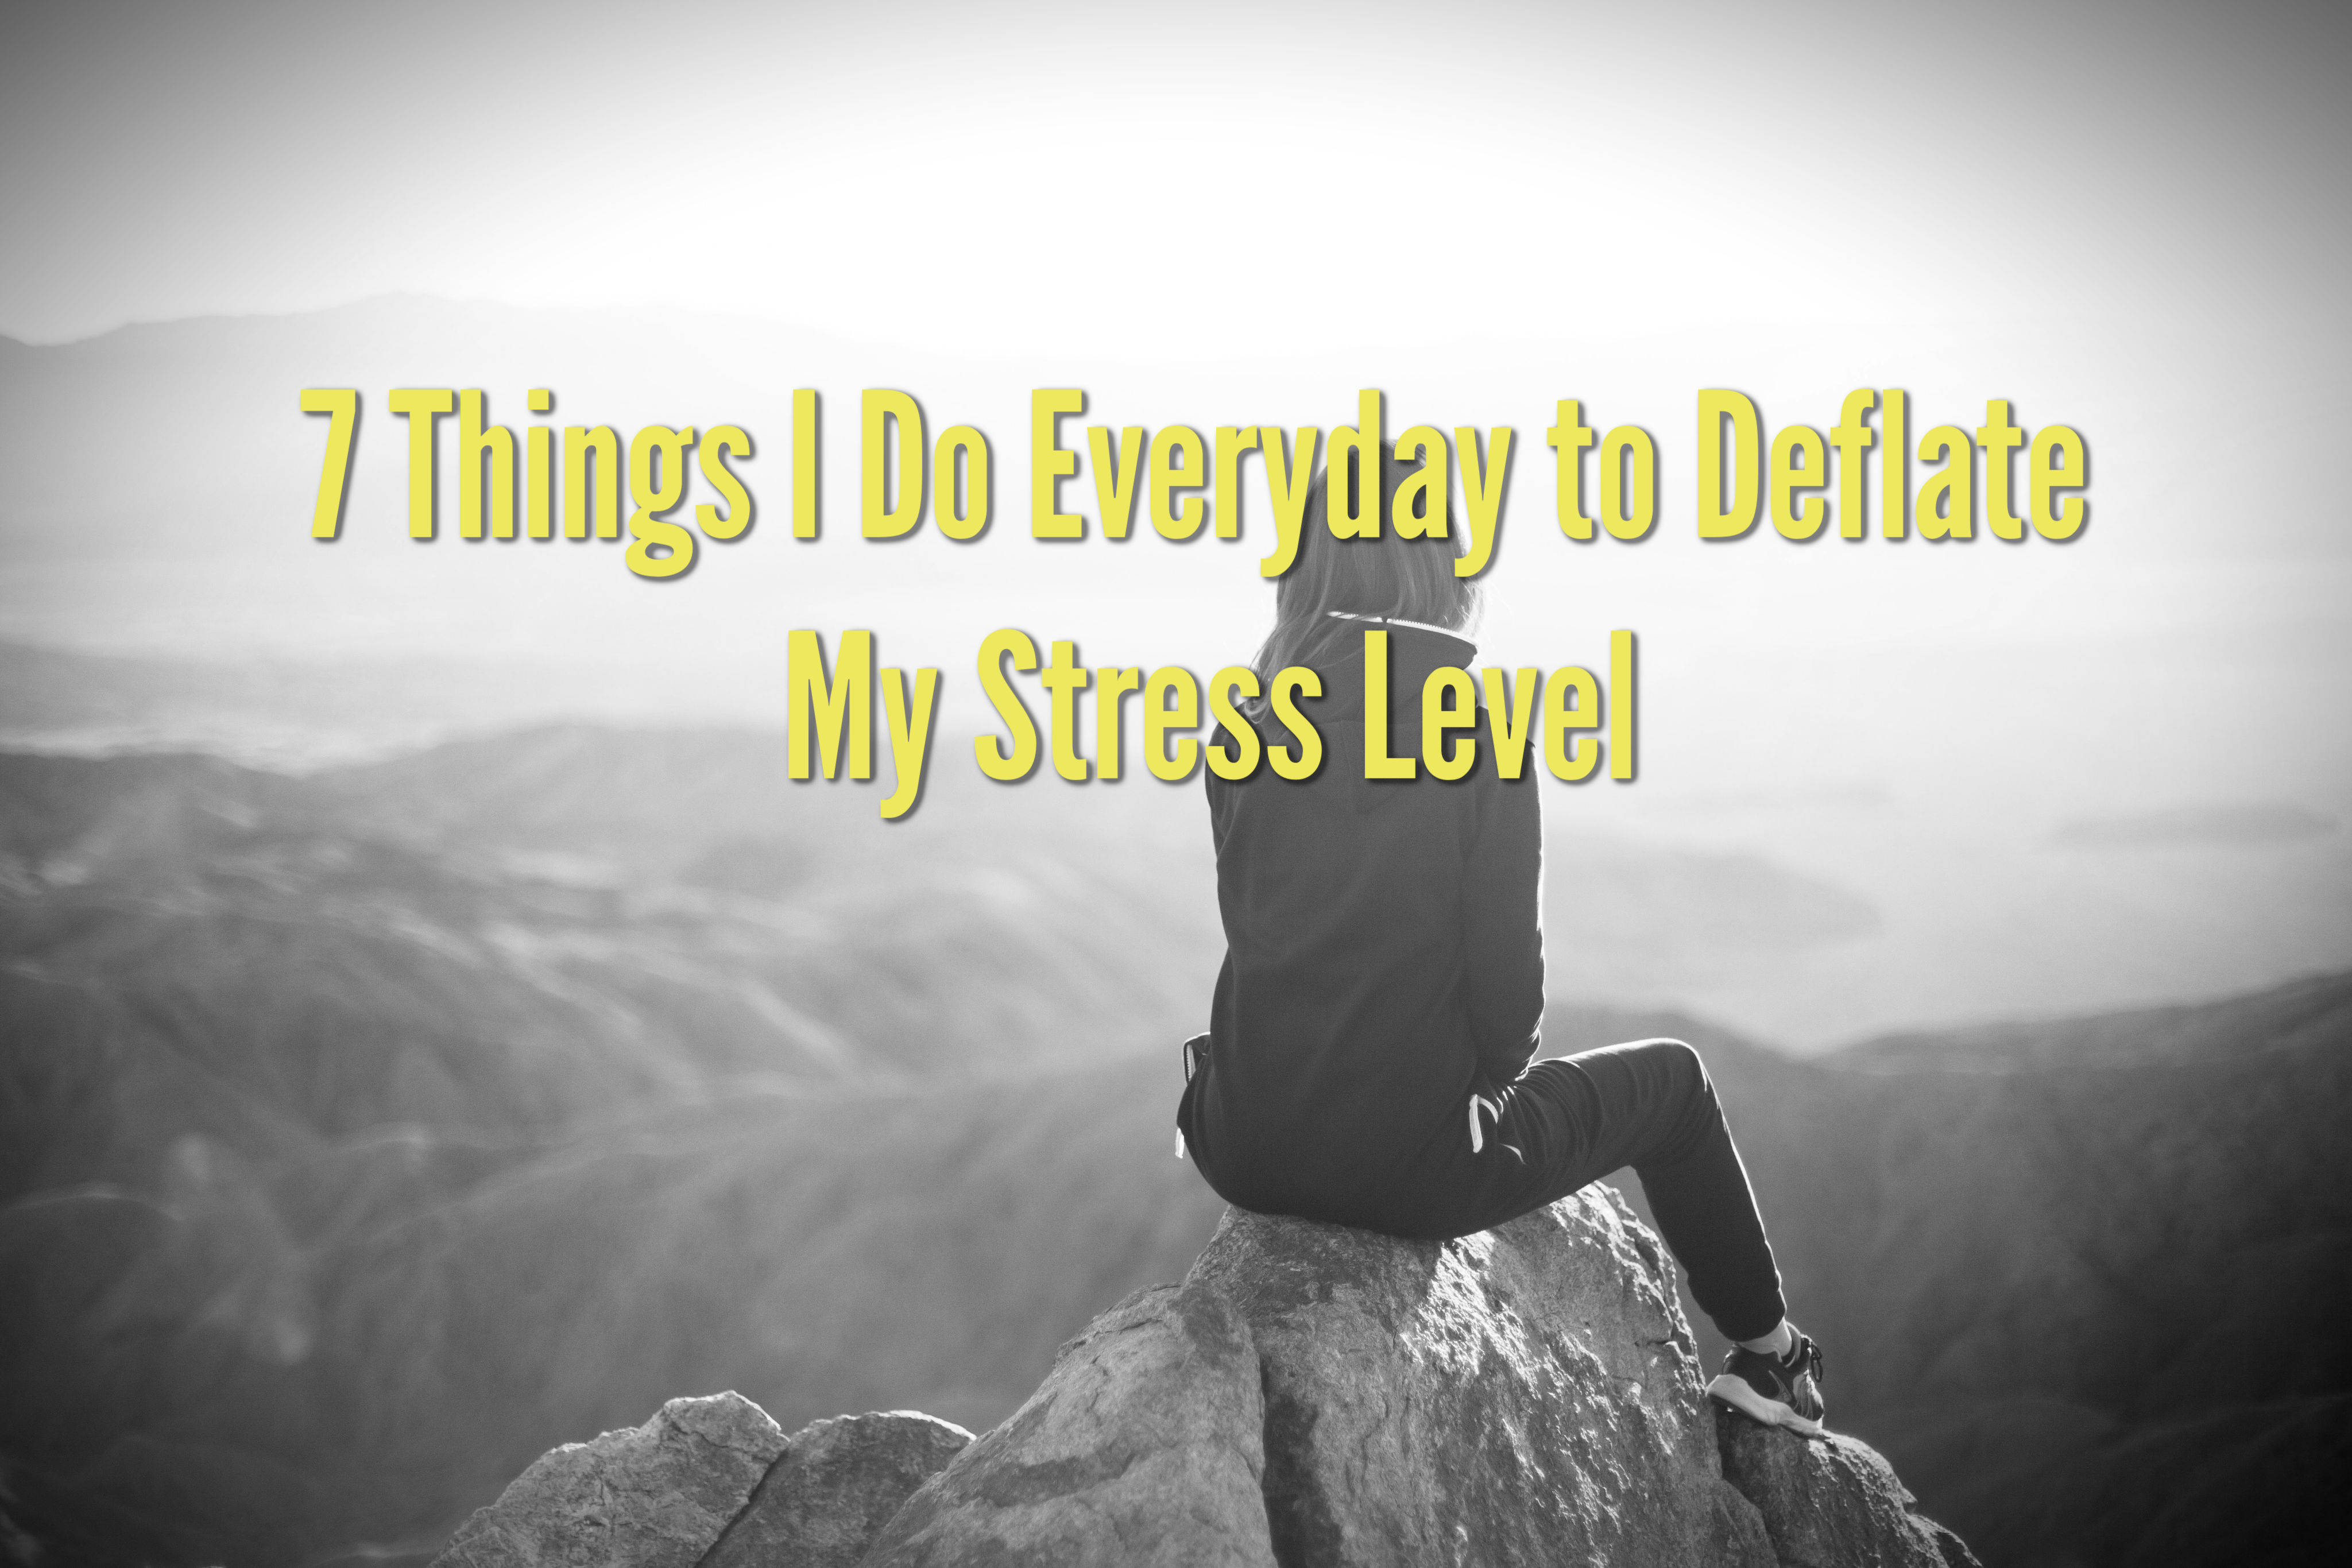 7 Things I Do Everyday to Deflate My Stress Level